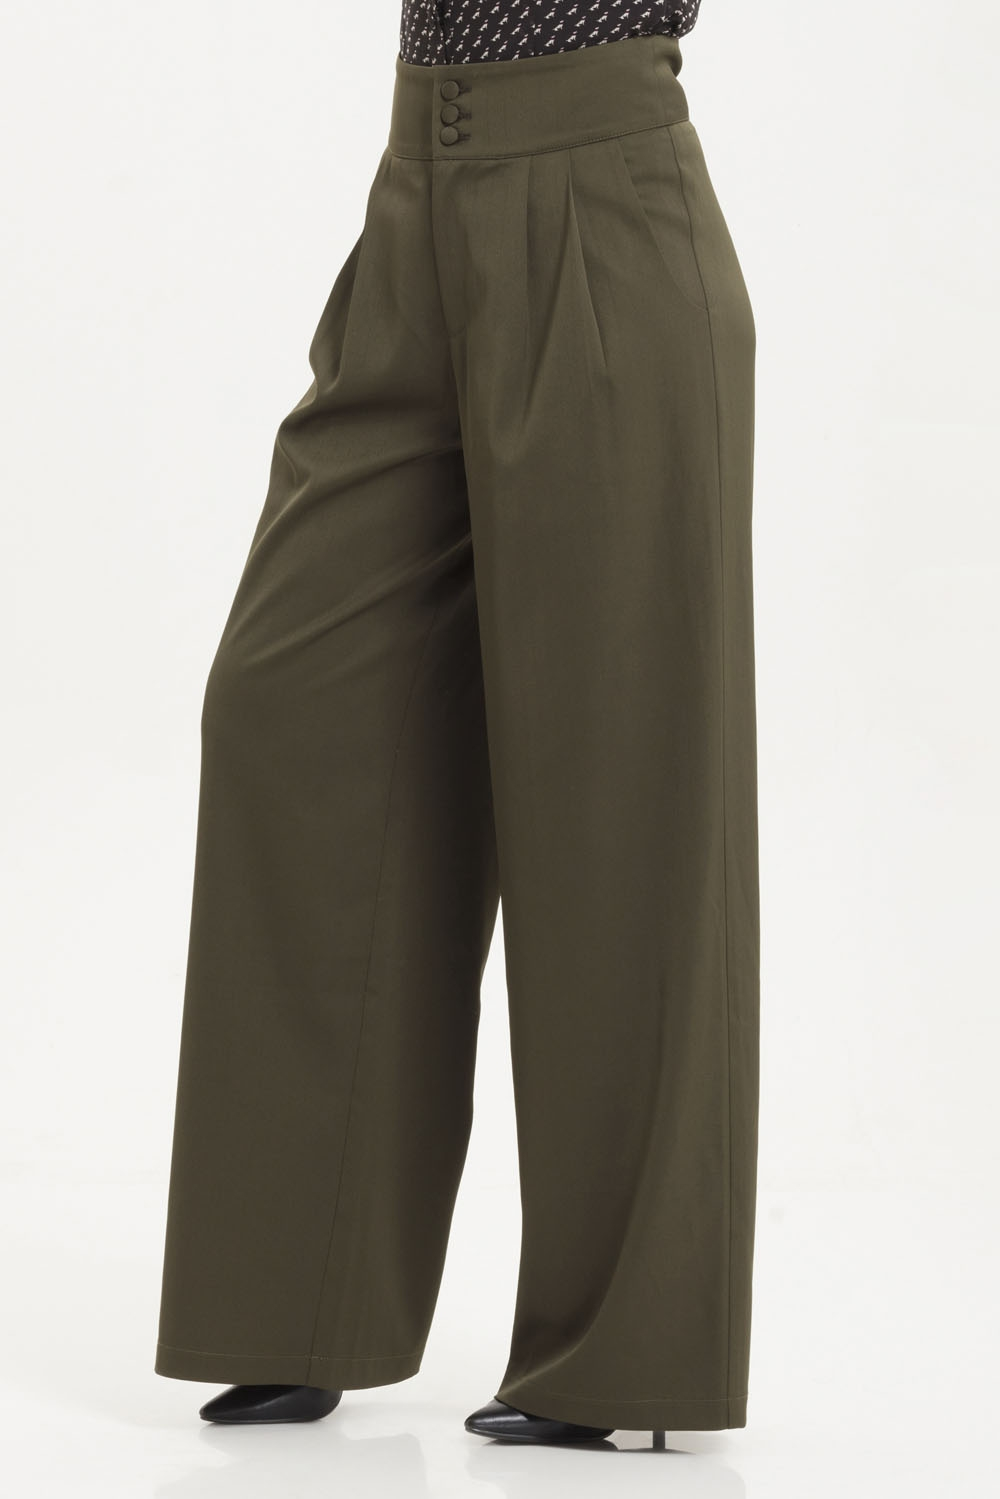 49a66cce2f20 Ola Olive Green Trousers